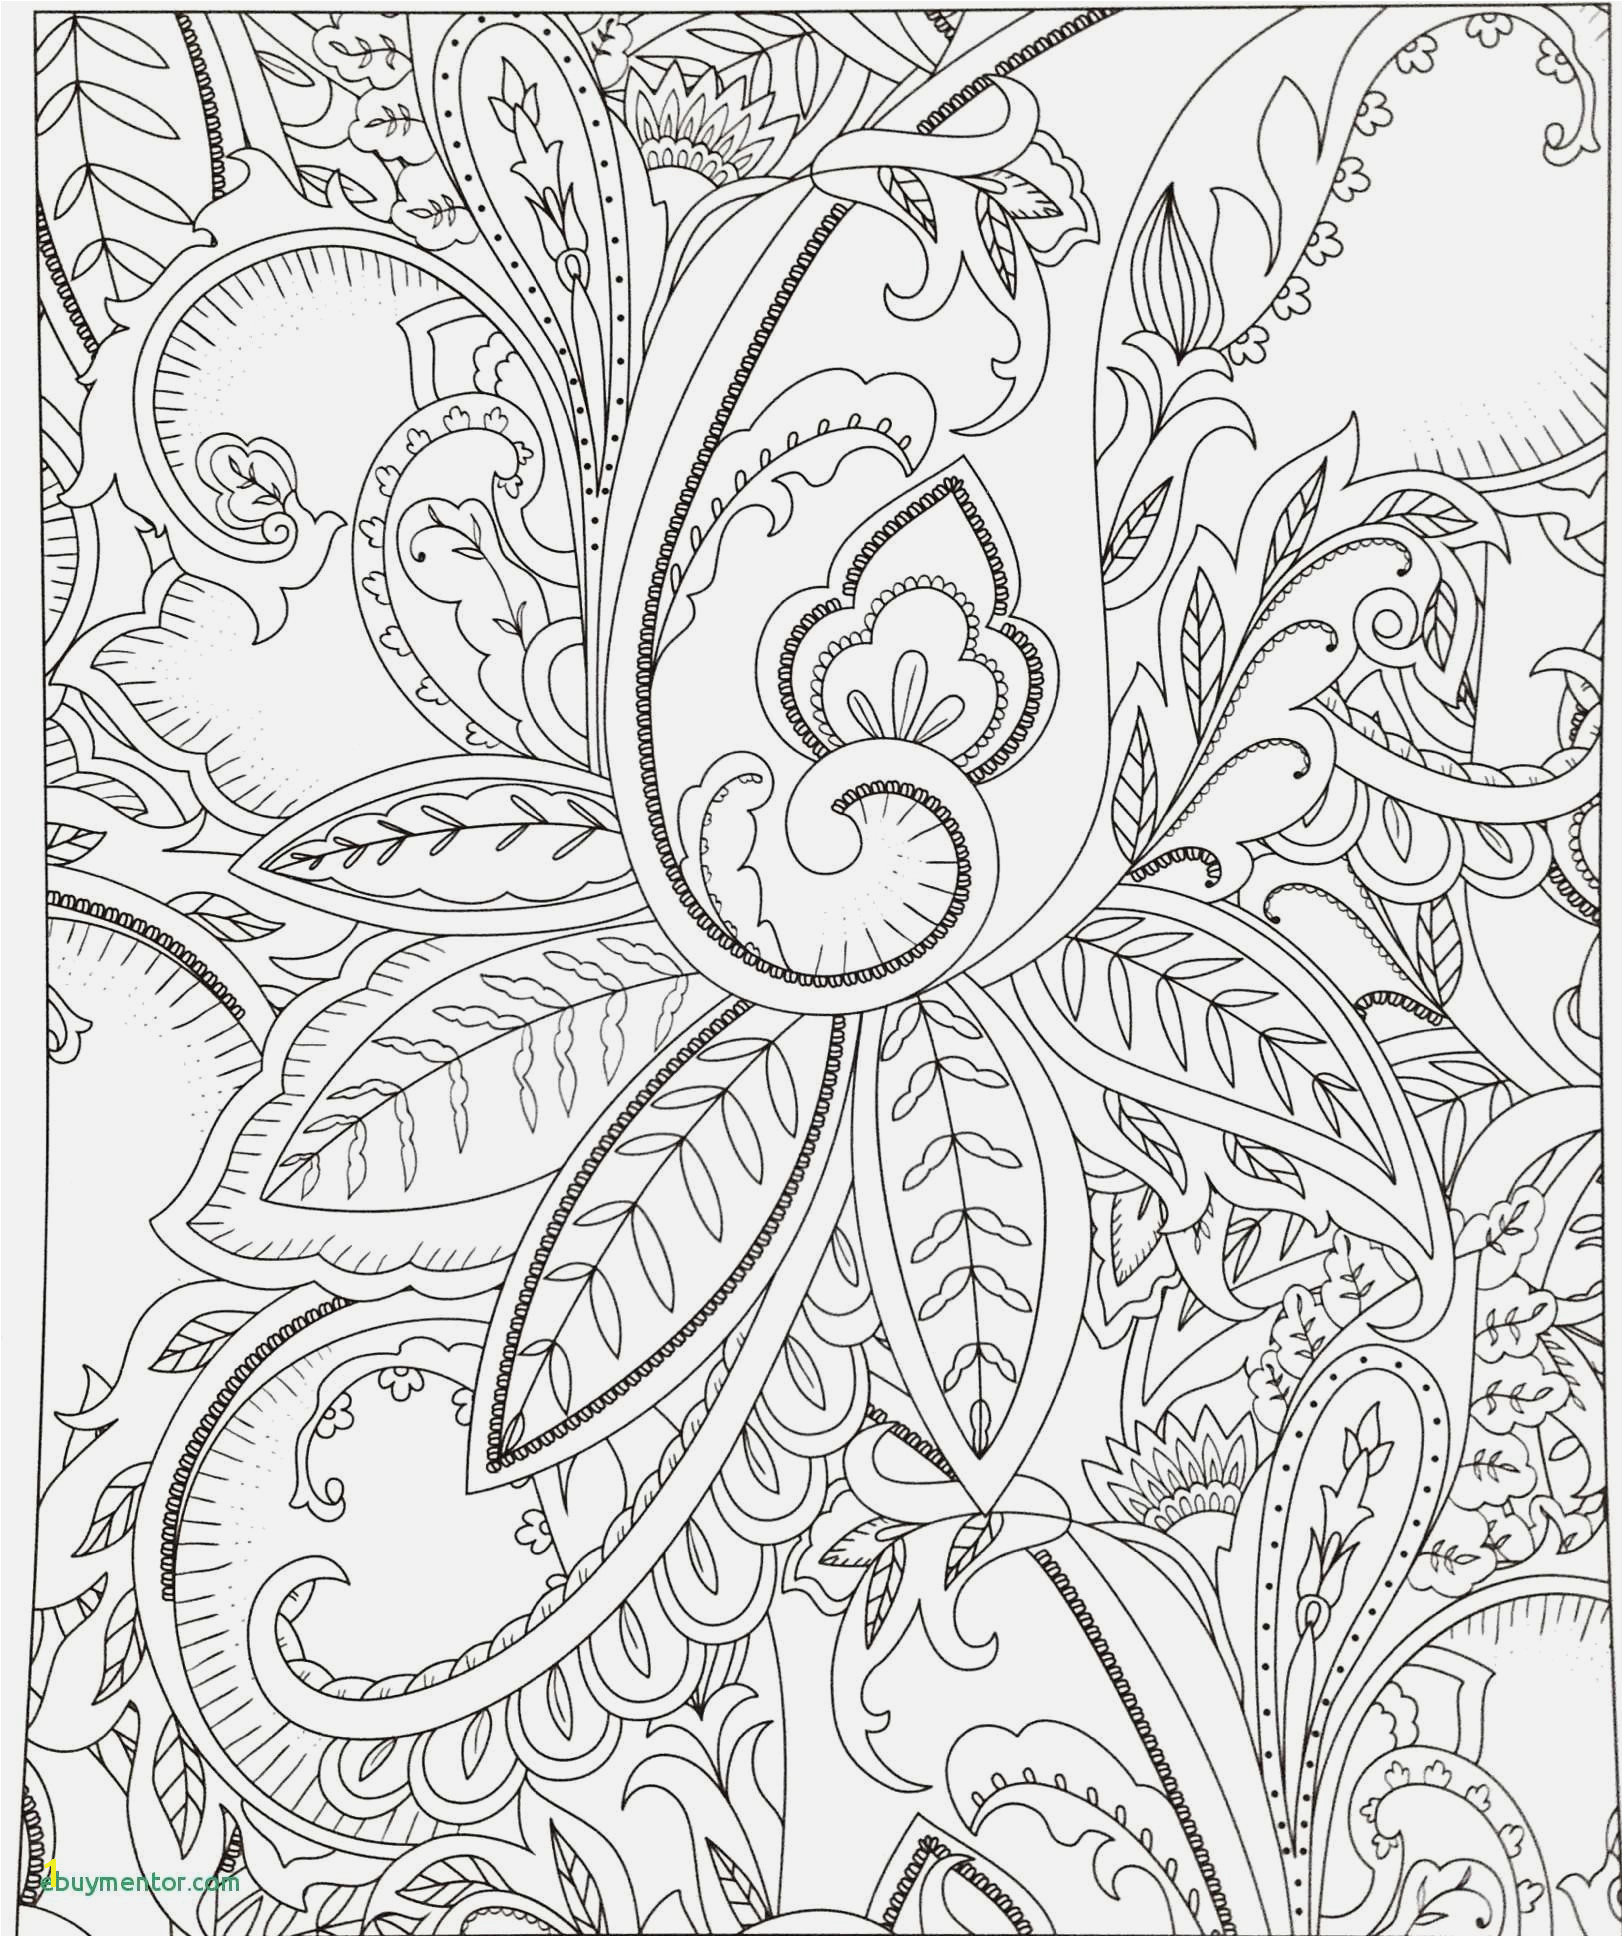 Coloring Pages Mandala Goat Coloring Pages Free Printable Coloring Pages Mandala Christmas Fresh Cool Coloring